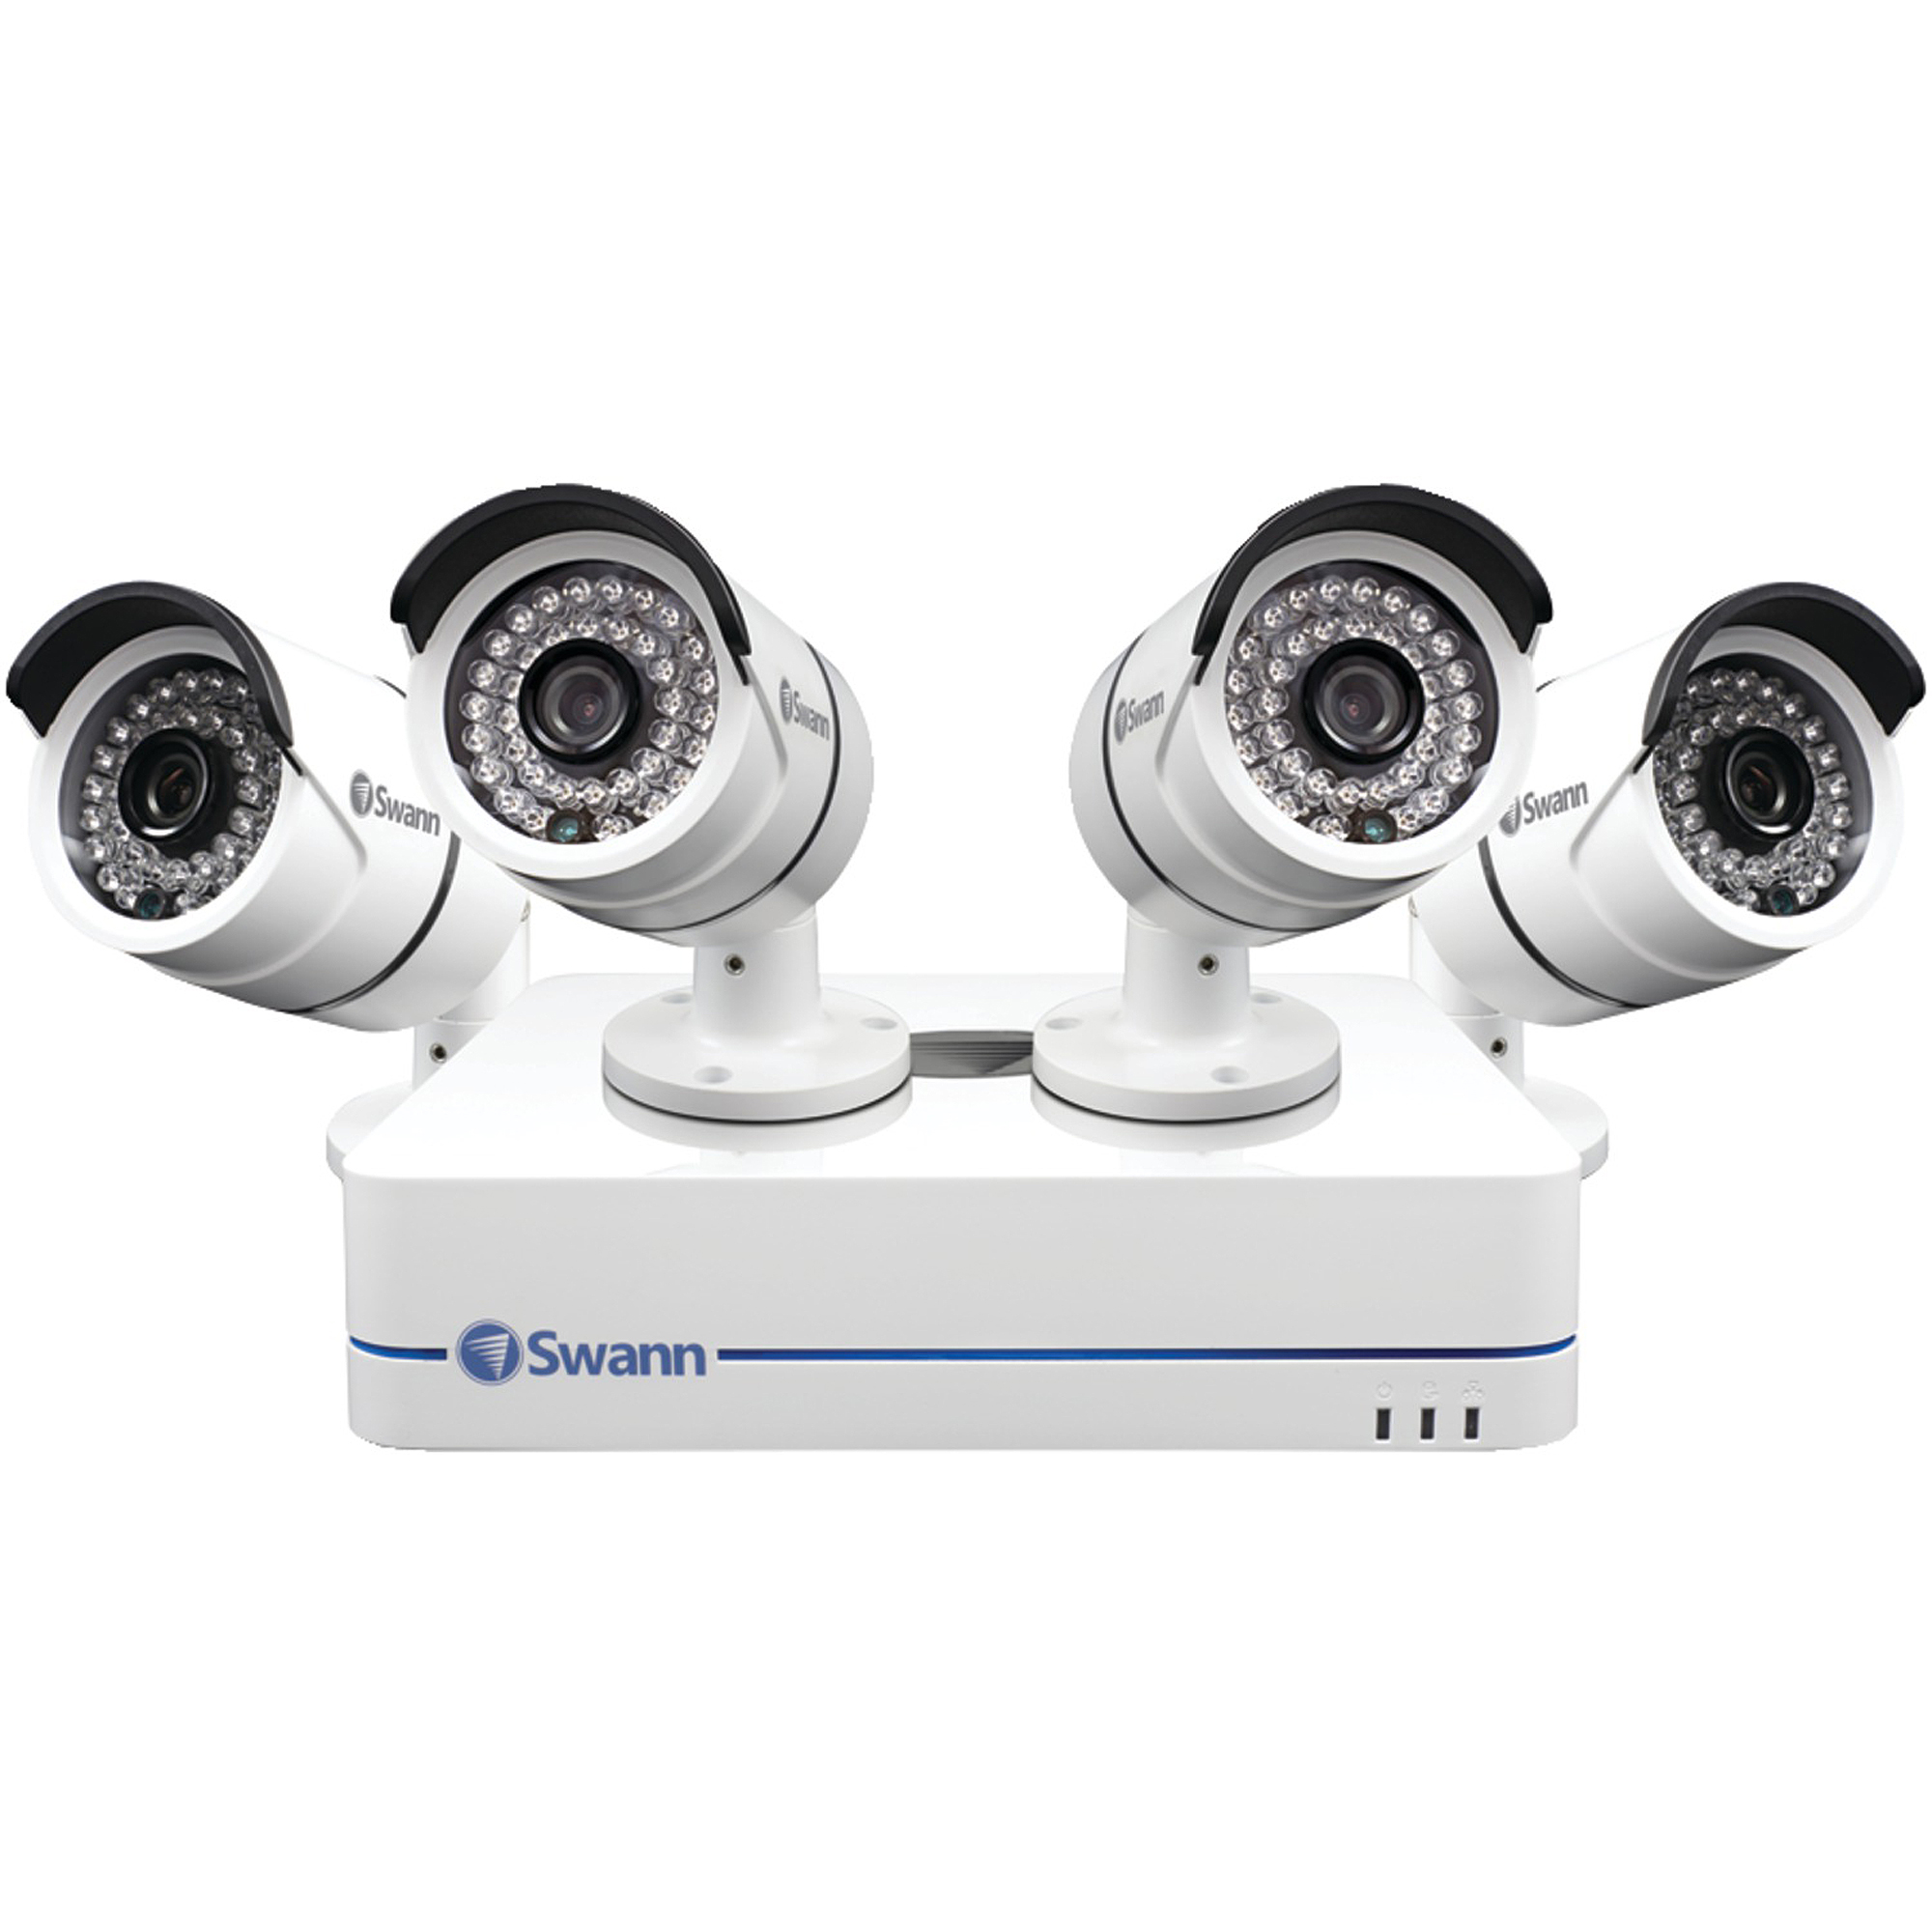 Swann Swnvk-470854-us 4-Channel 720p NVR with 4 Security Cameras